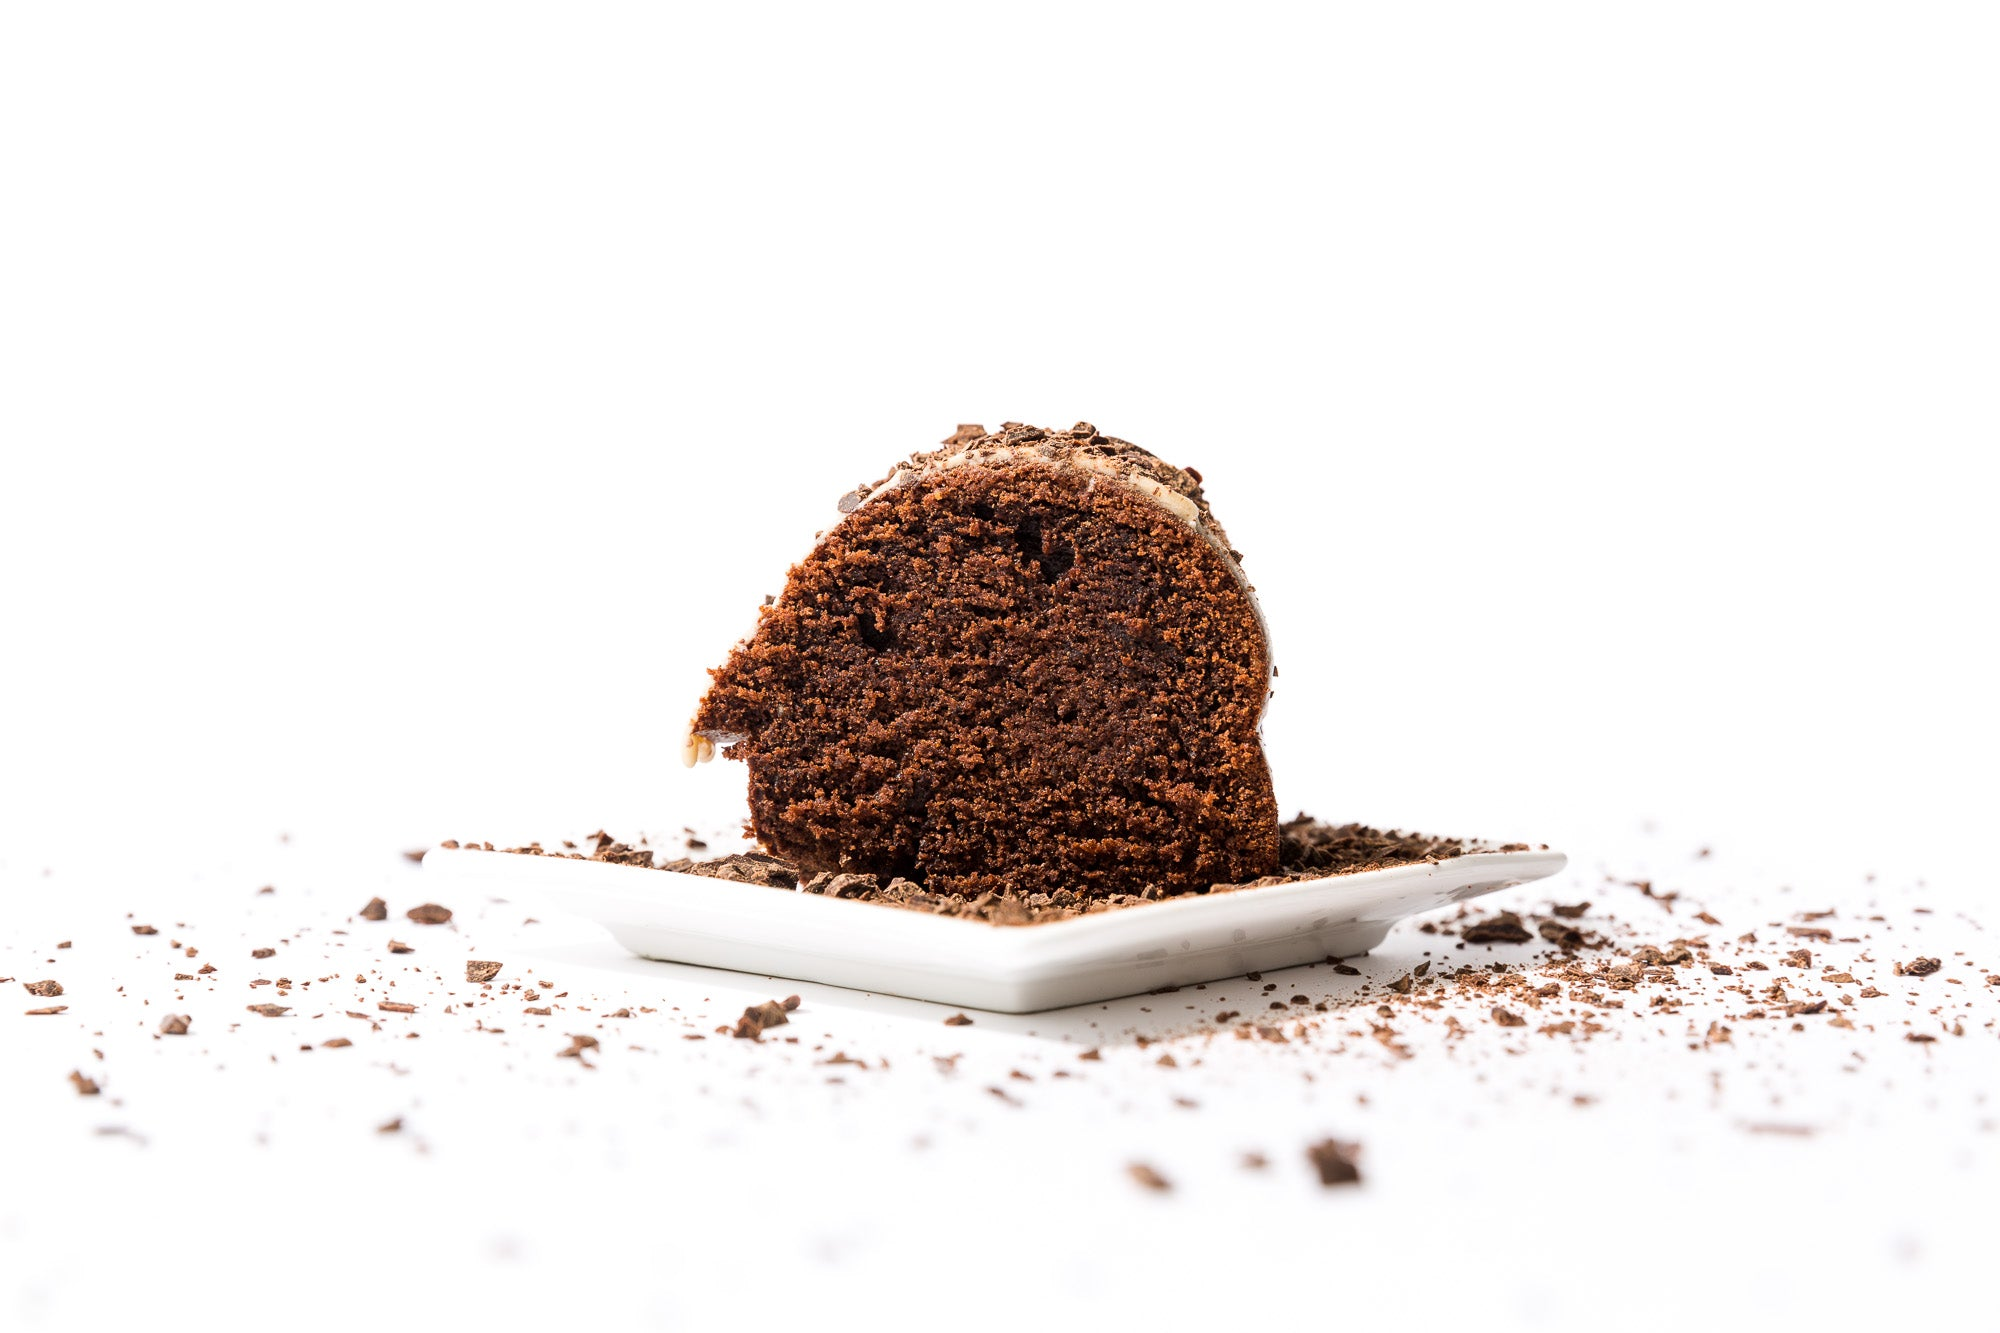 The side of a slice of Miss Jones Baking Co Chocolate Almond Butter Bundt Cake on a white plate surrounded by chocolate shavings